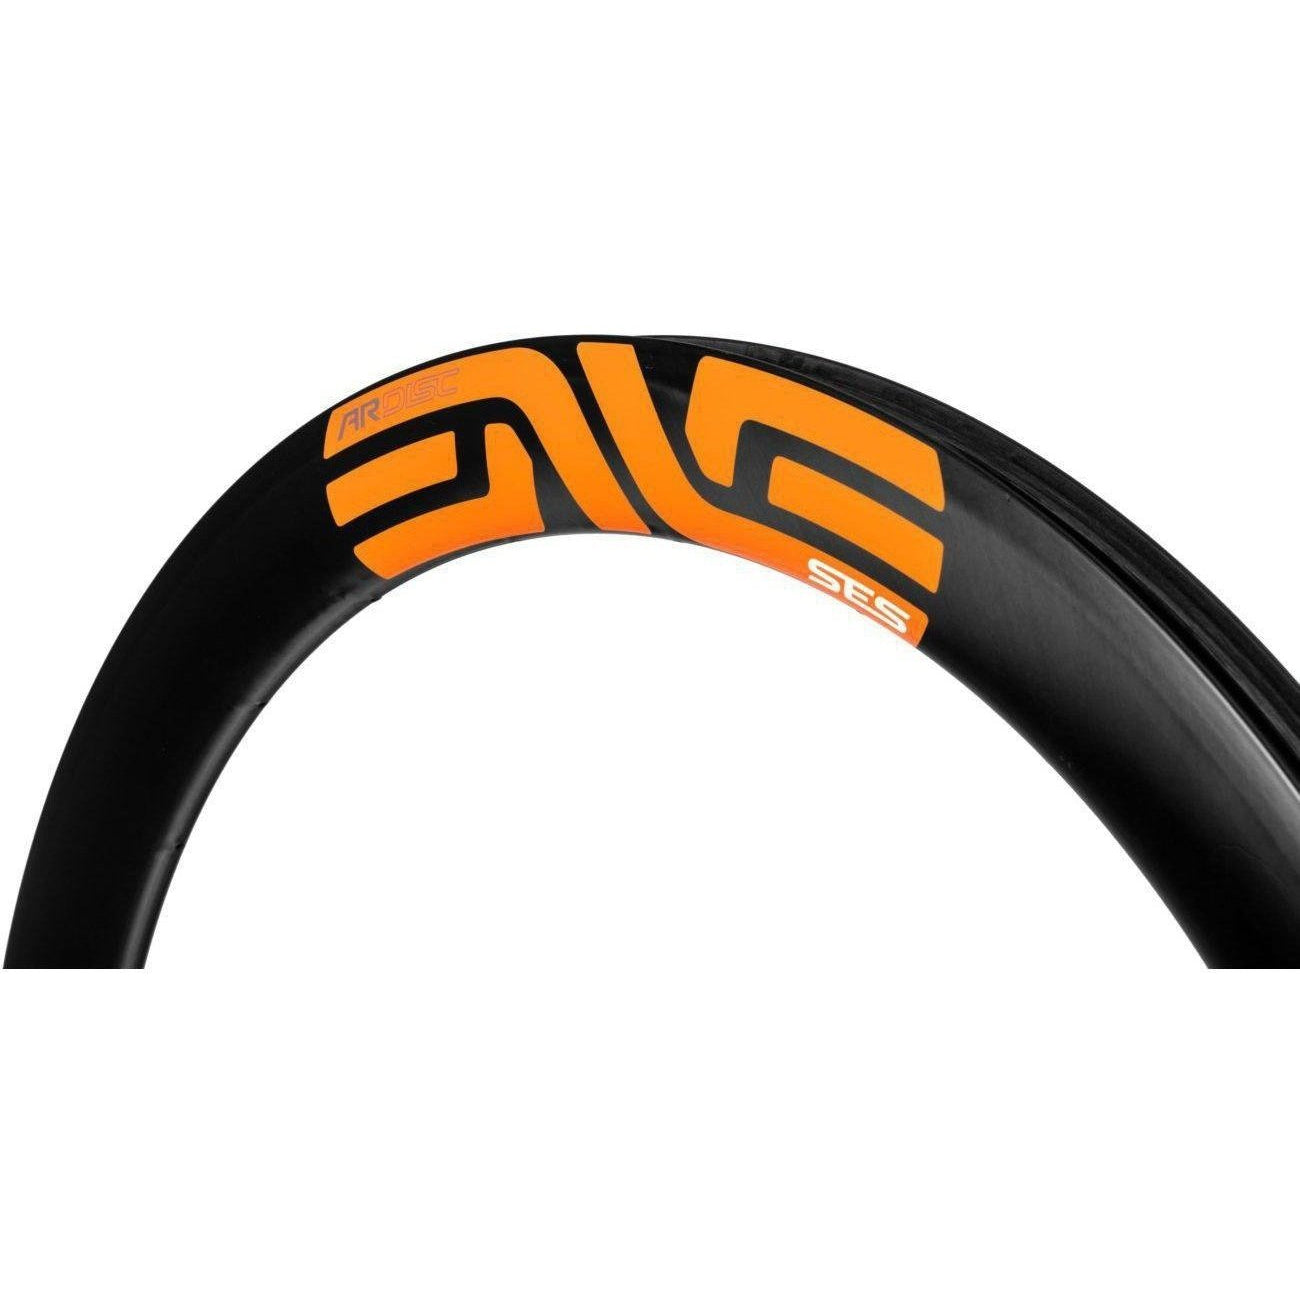 ENVE SES 4.5 AR Disc Decals